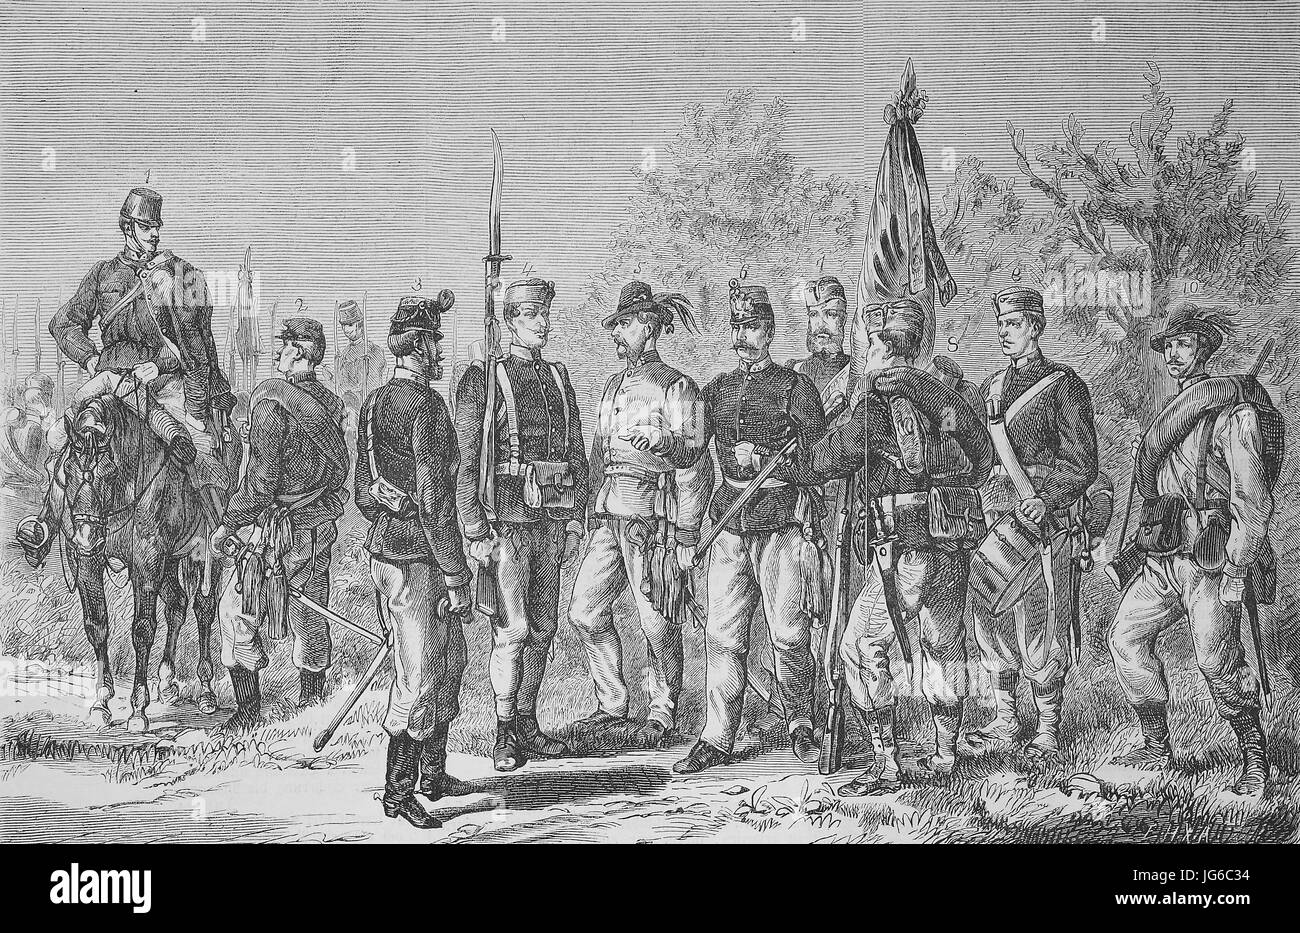 Digital improved:, The new uniform of the Austrian Infantry army, soldiers, army, Austria, illustration from the Stock Photo